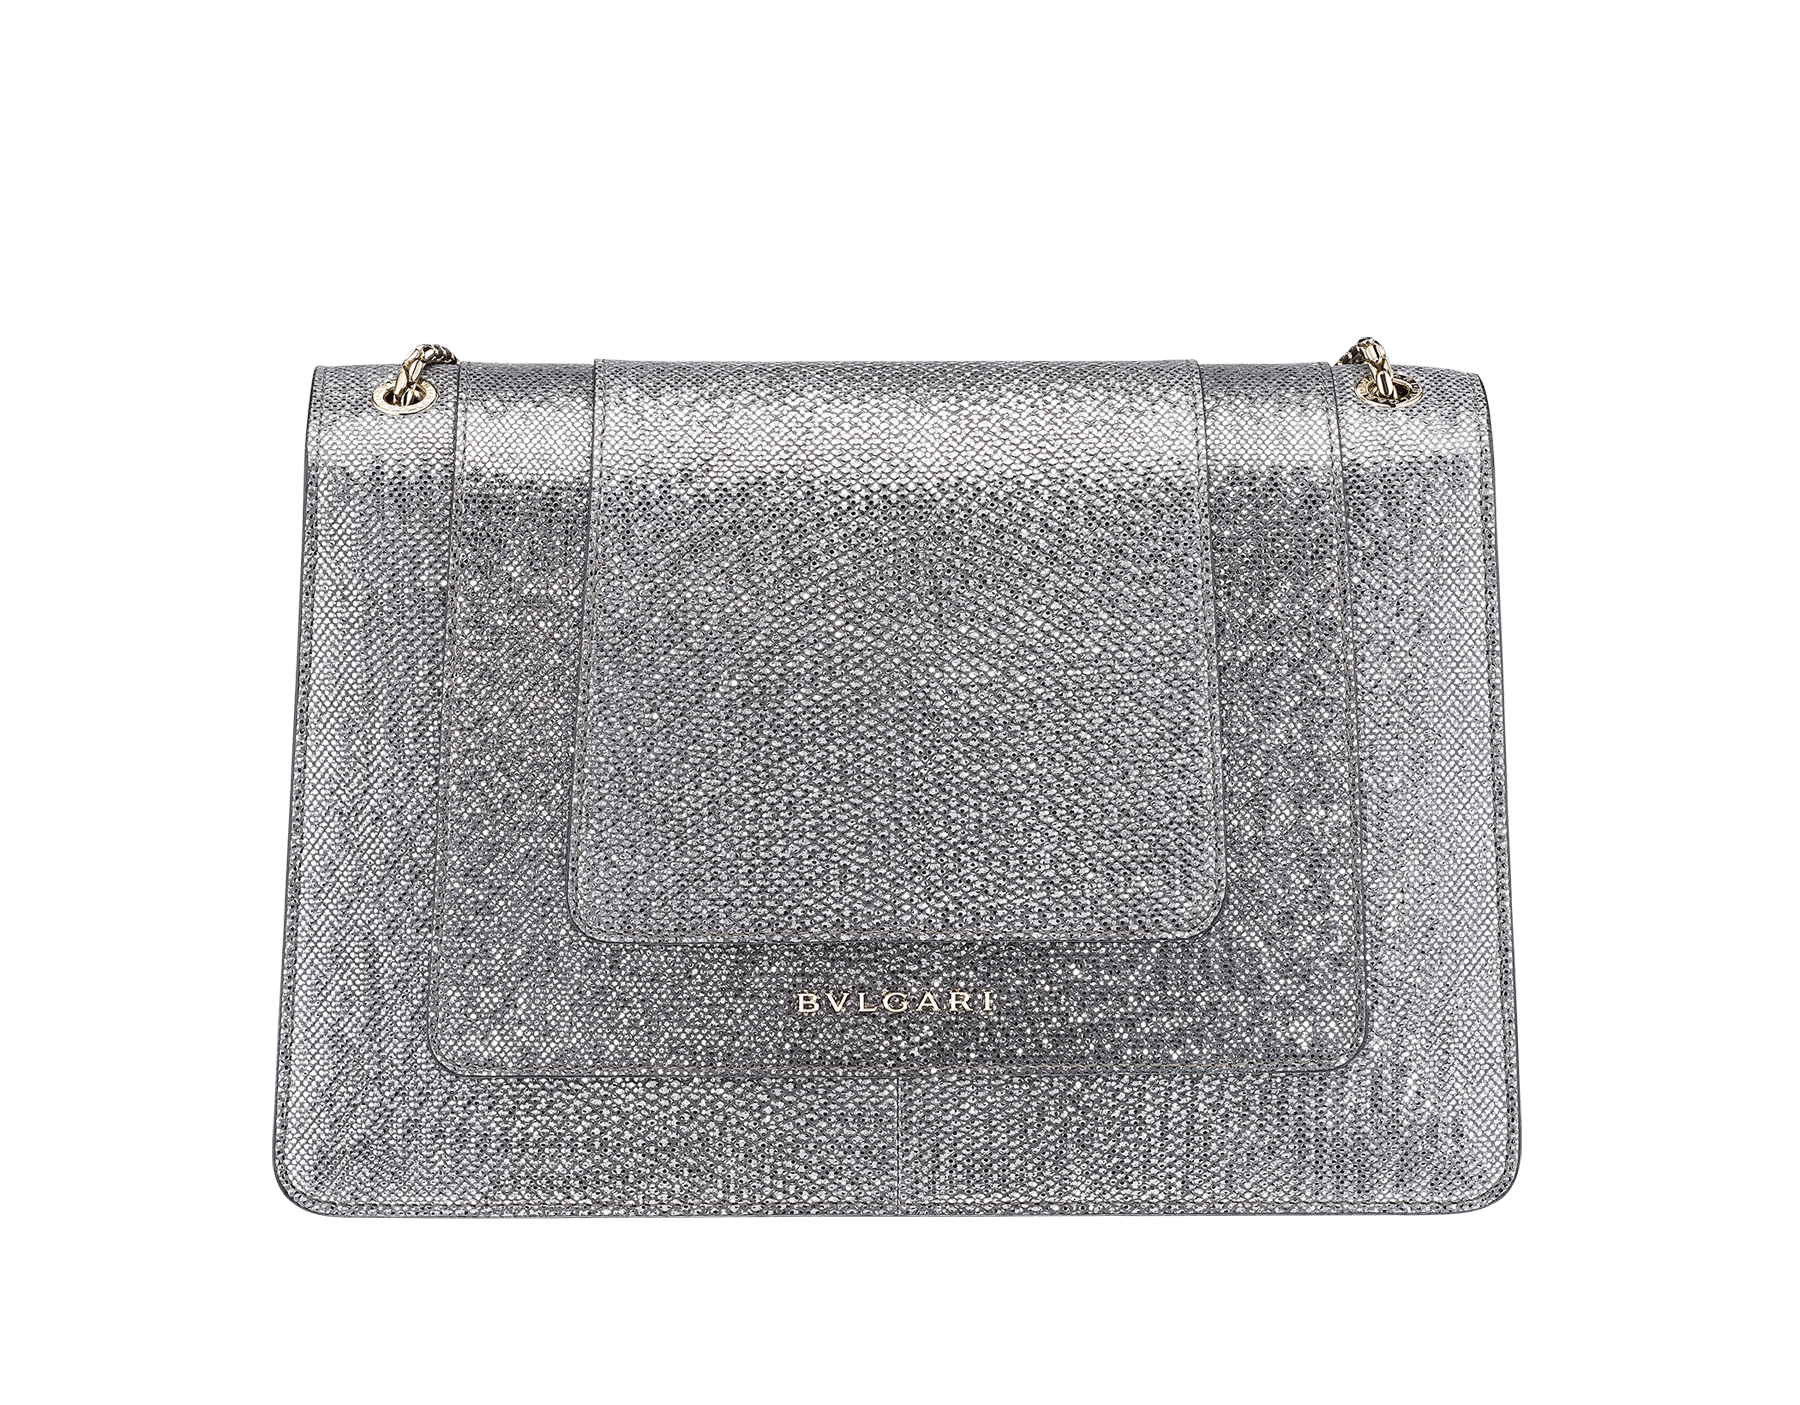 Flap cover bag Serpenti Forever in metallic silver karung skin. Brass light gold plated tempting snake head closure in shiny black and glitter silver enamel, with eyes in black onyx.  521-MK image 3